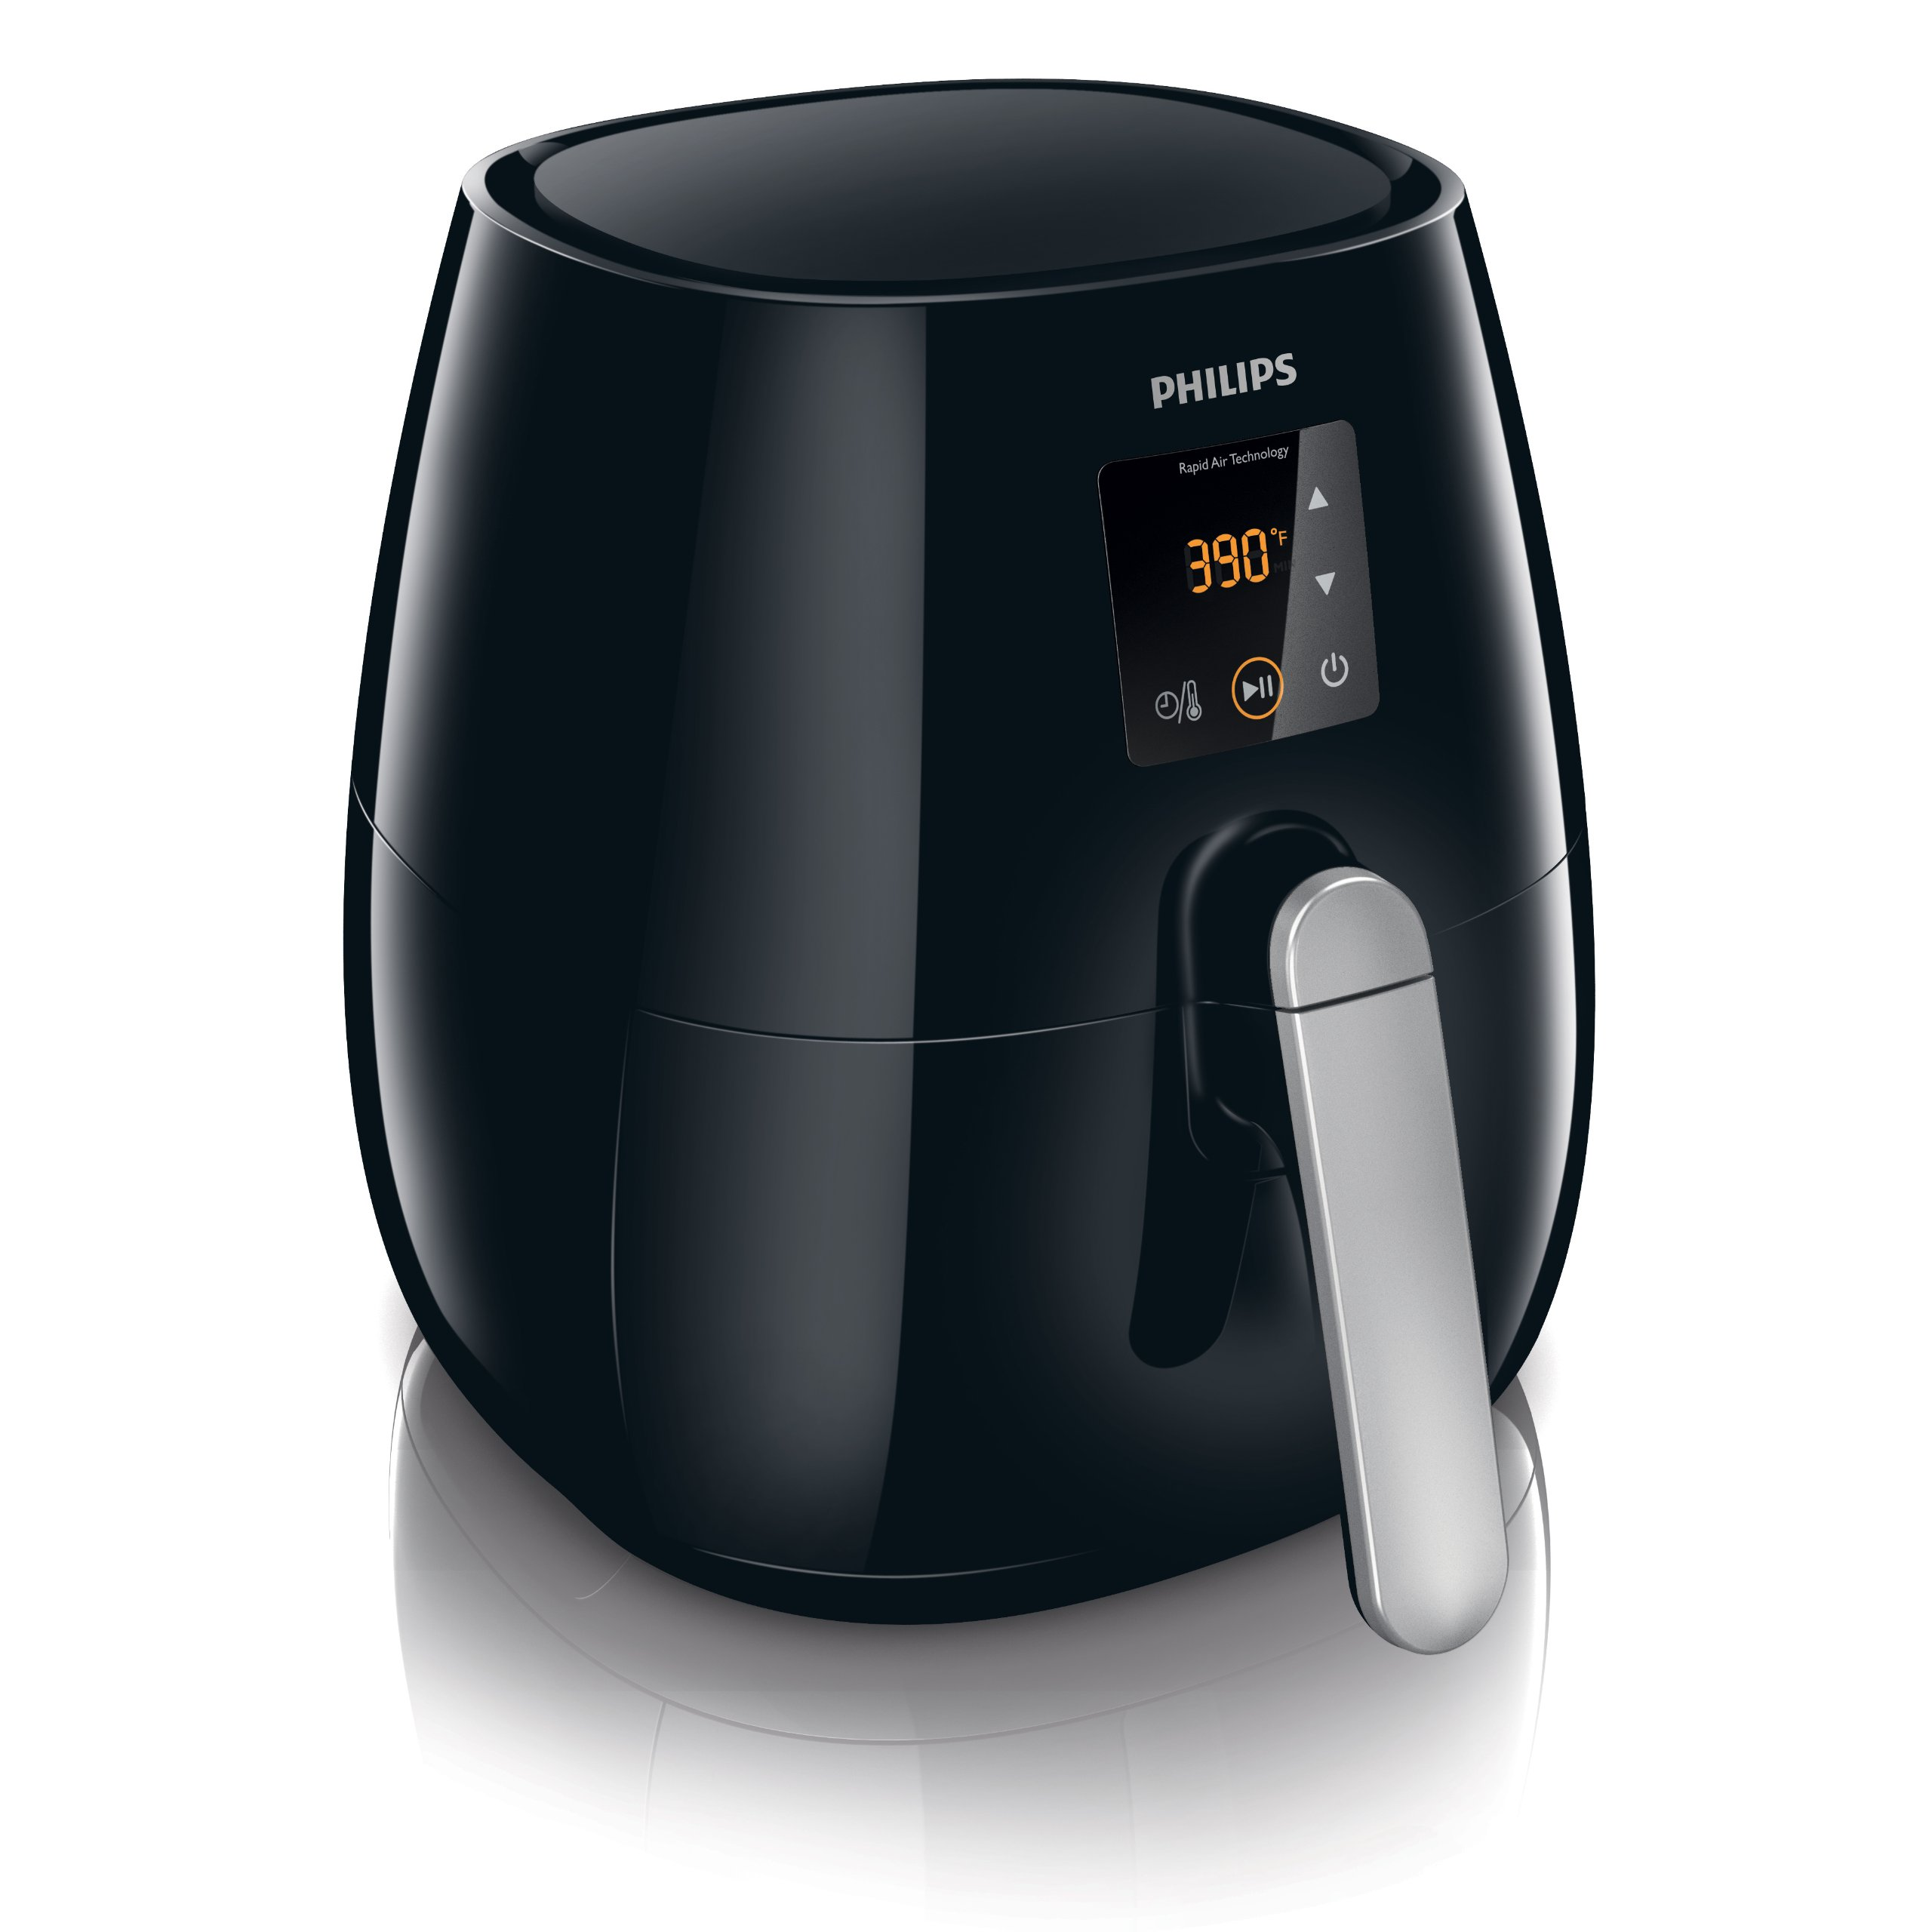 Philips Digital Airfryer, The Original Airfryer, Fry Healthy with 75% Less Fat, Black HD9230/26 by PHILIPS